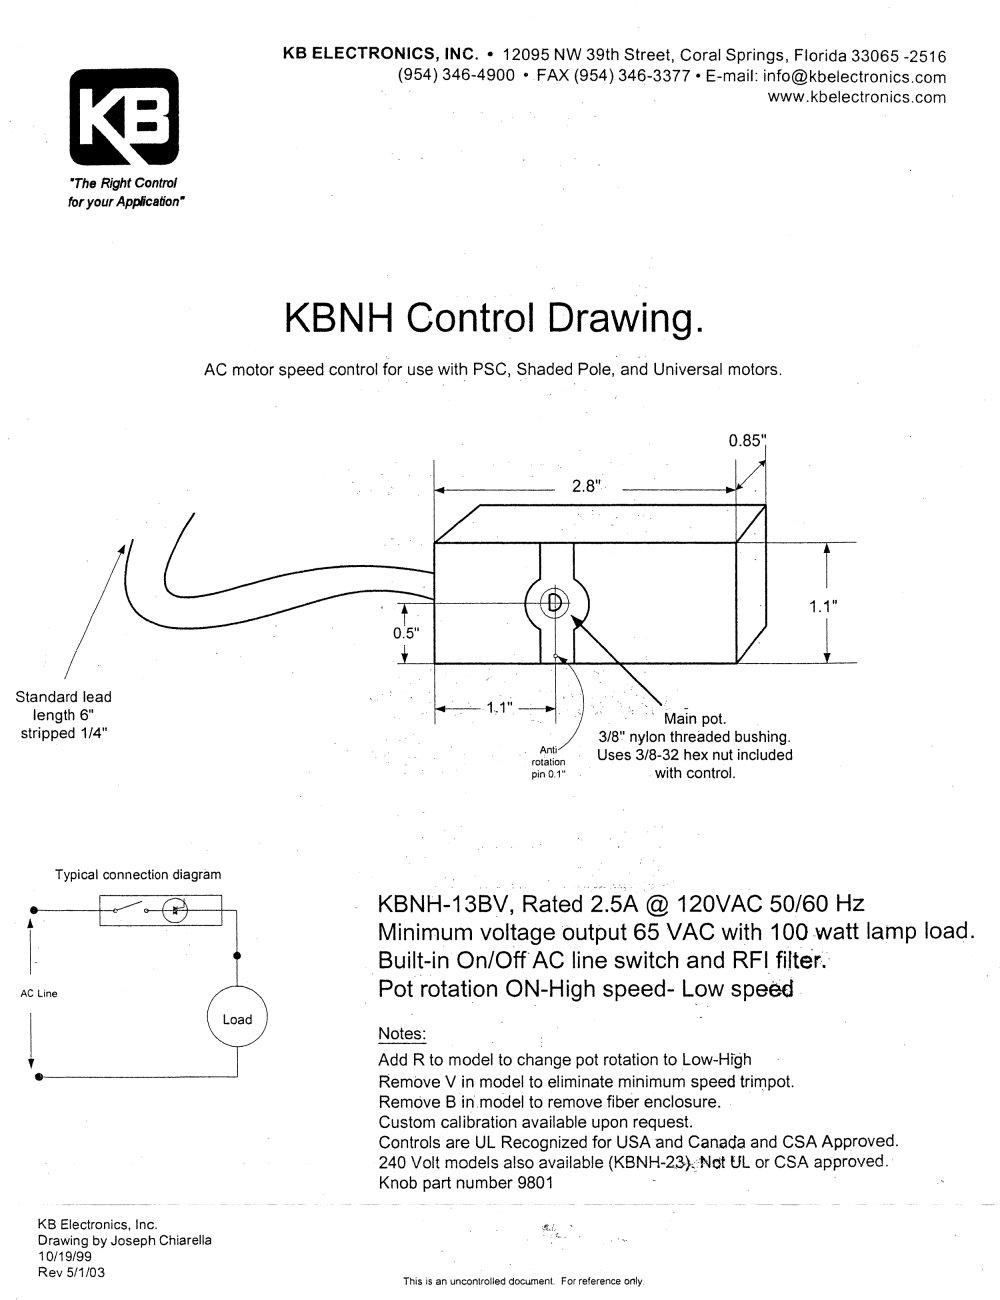 Panel Mount Ac Motor Fan Controls Kbnh 13bv Kb Electronics Inc Wiring Diagram 1 Pages